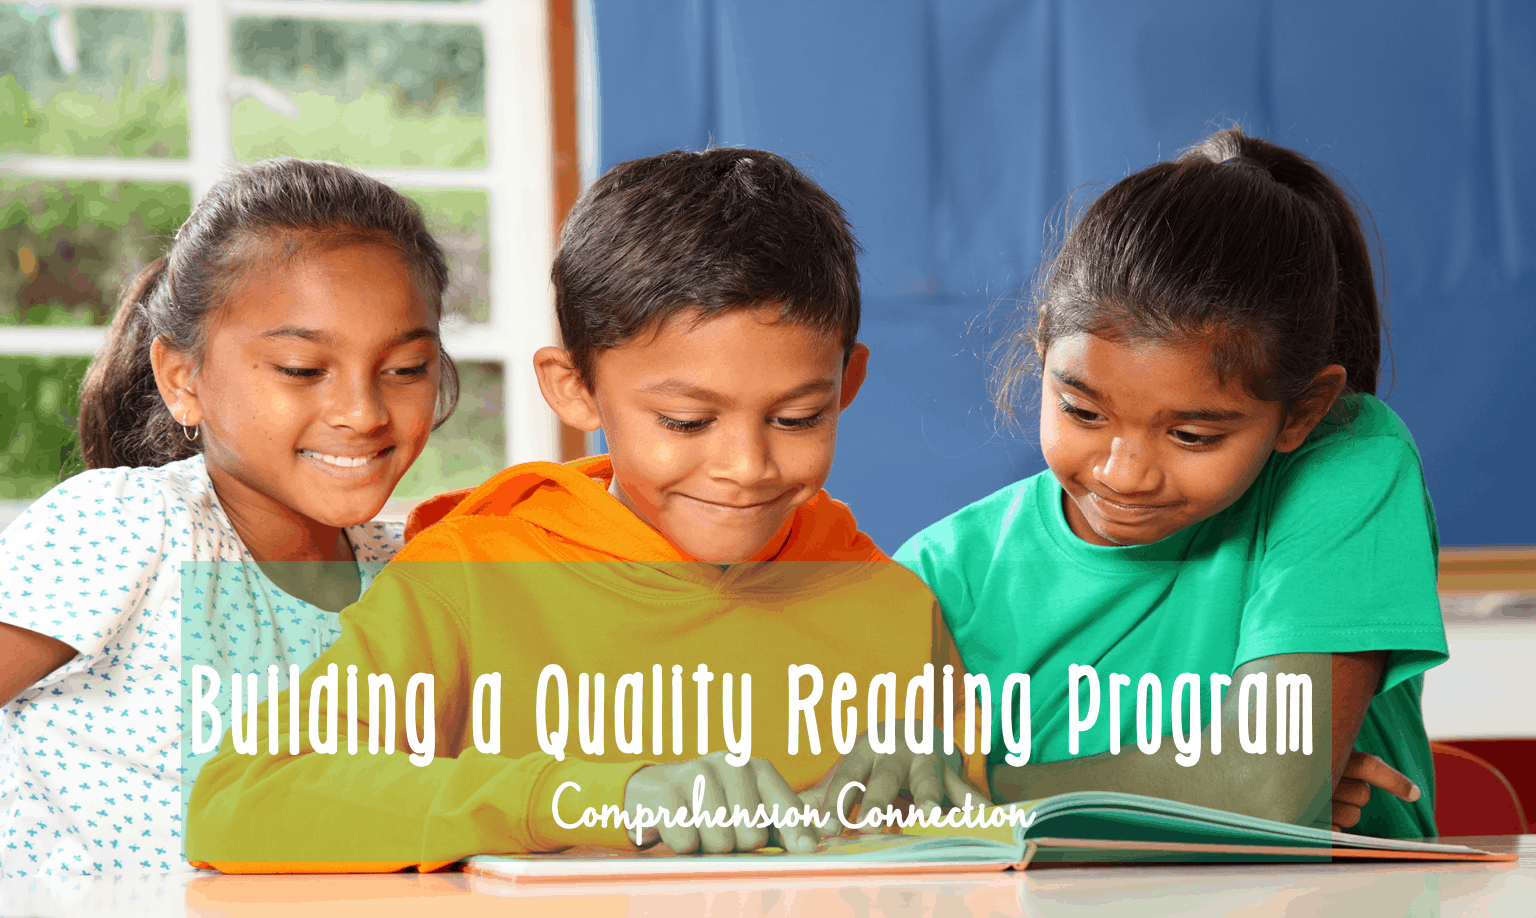 Quality reading programs start with Tier 1 instruction in the classroom. Sound instructional practices build a love of reading and make the reading-writing connection. Check out this post for ten practices each teacher needs for building lifelong readers.